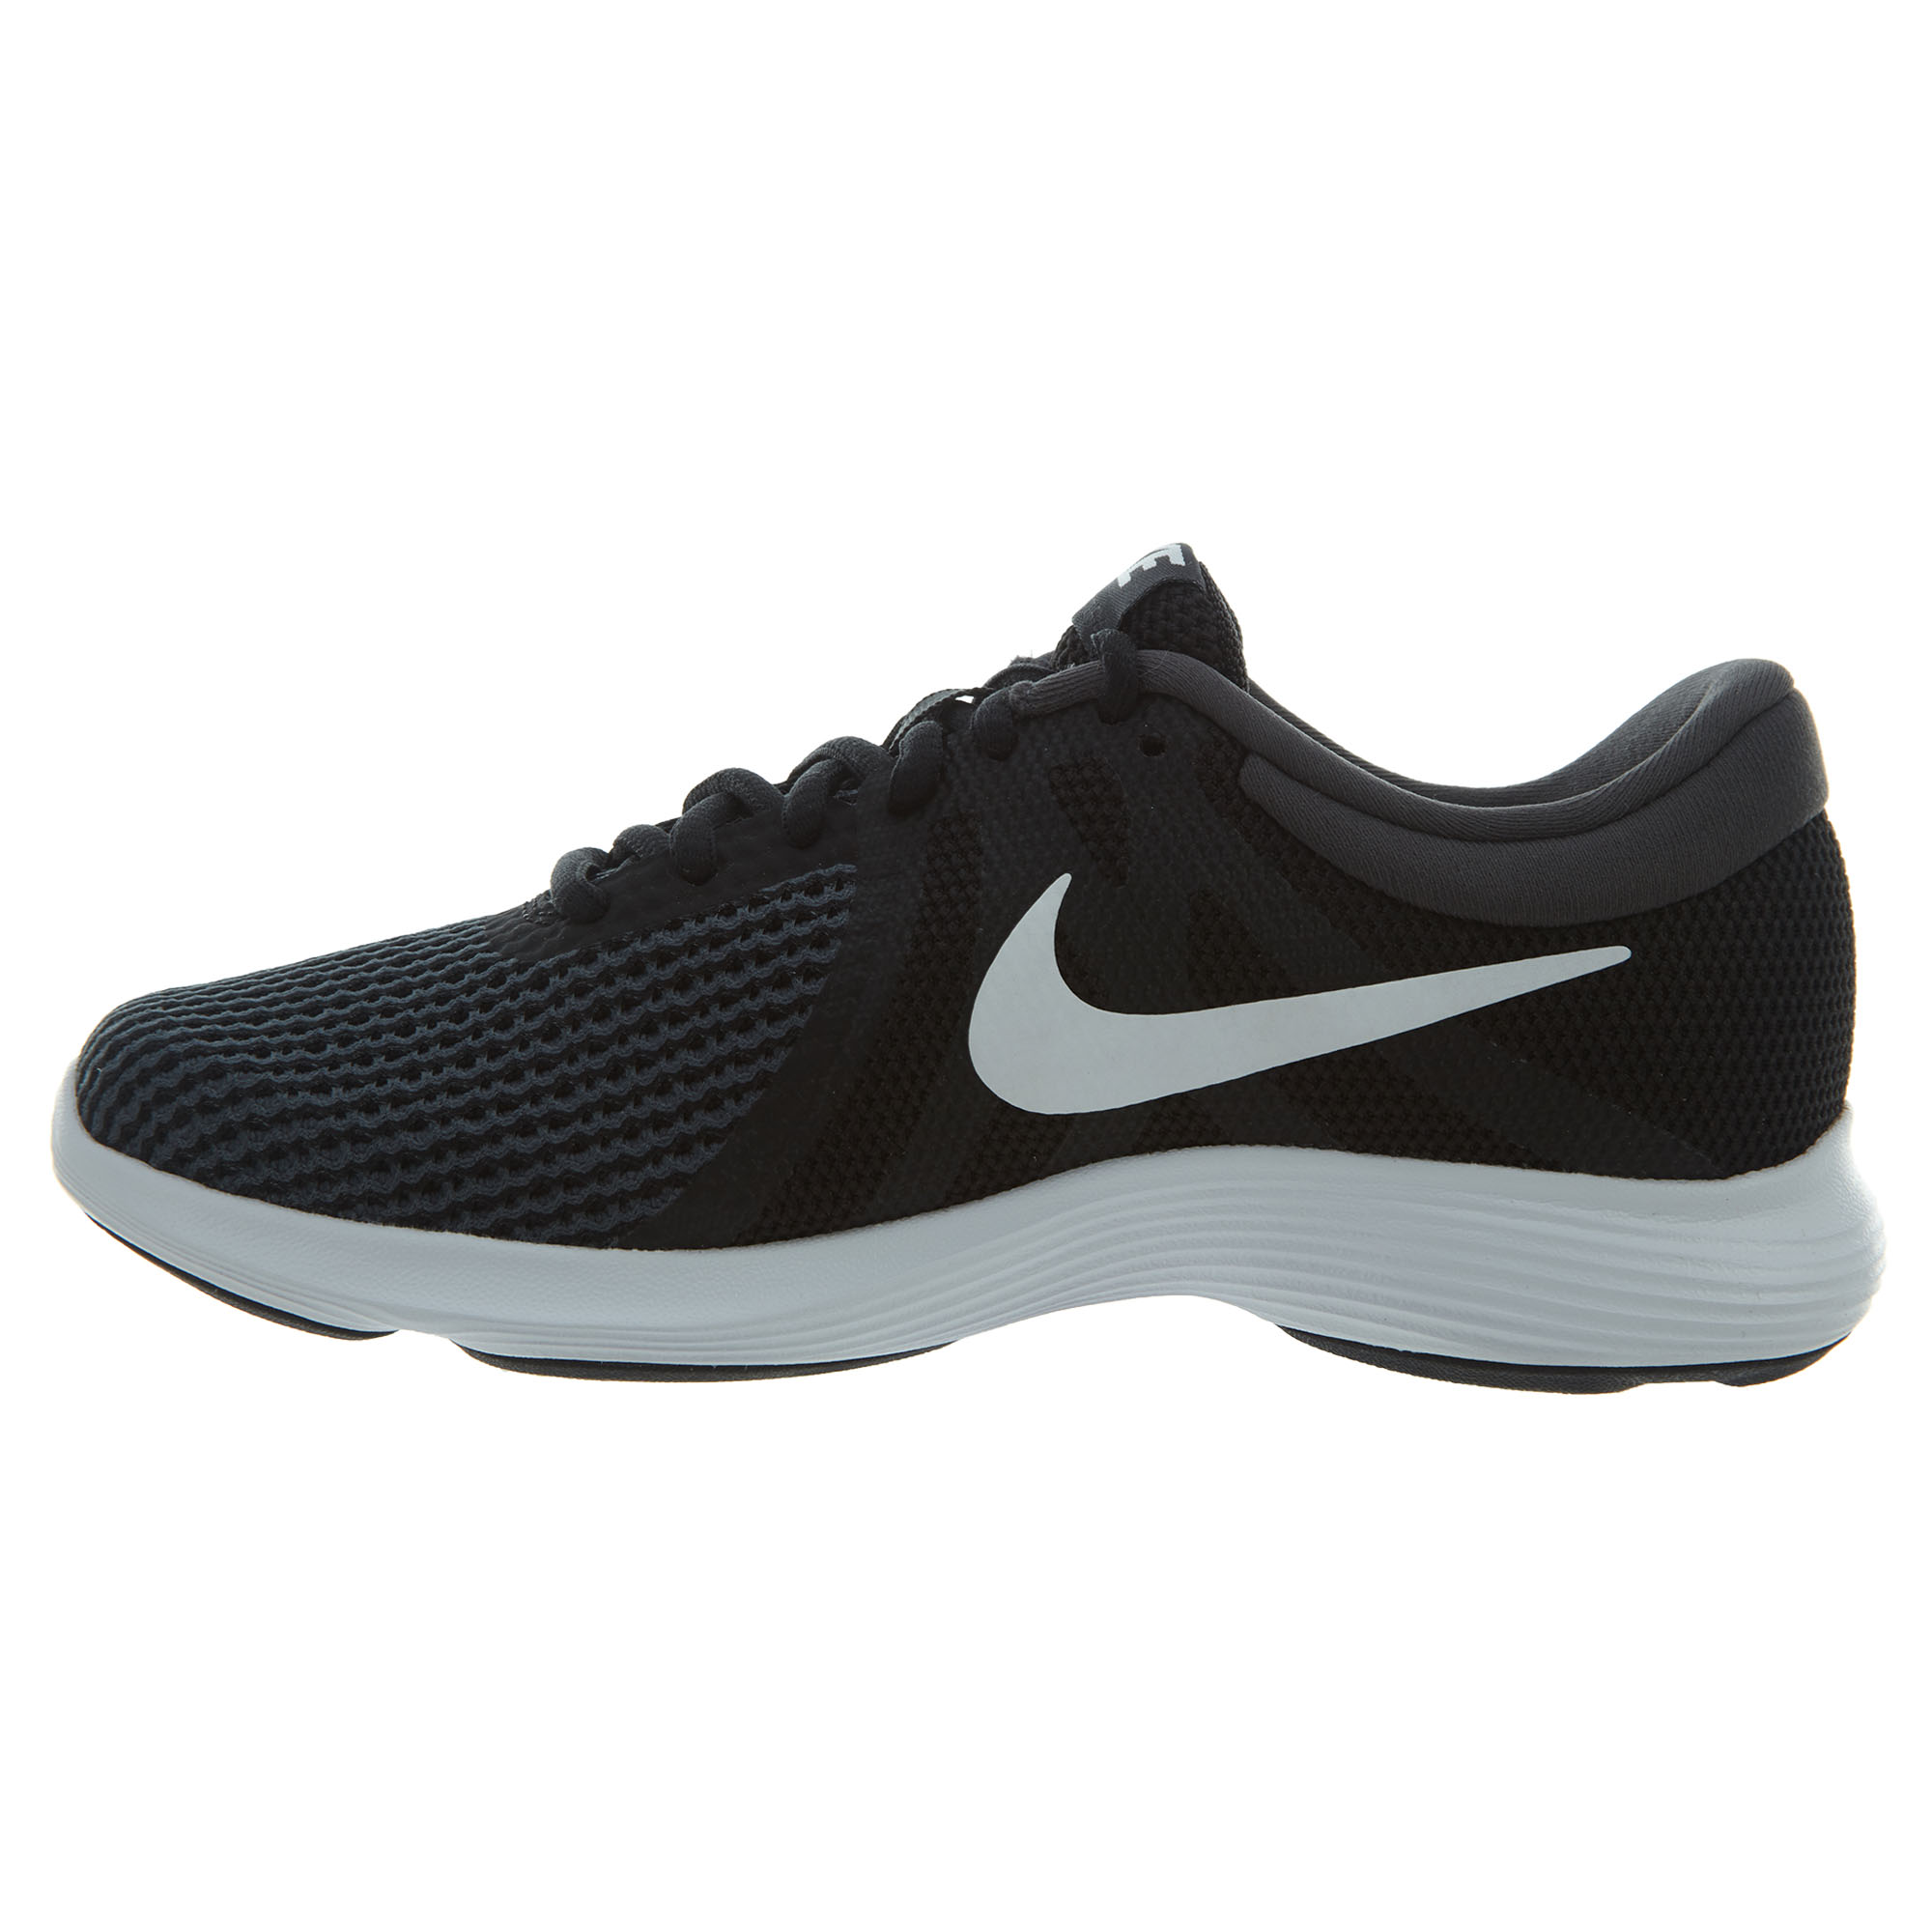 b56e1c192e55 Details about Nike Womens Revolution 4 Wide Sneakers AH8799-001